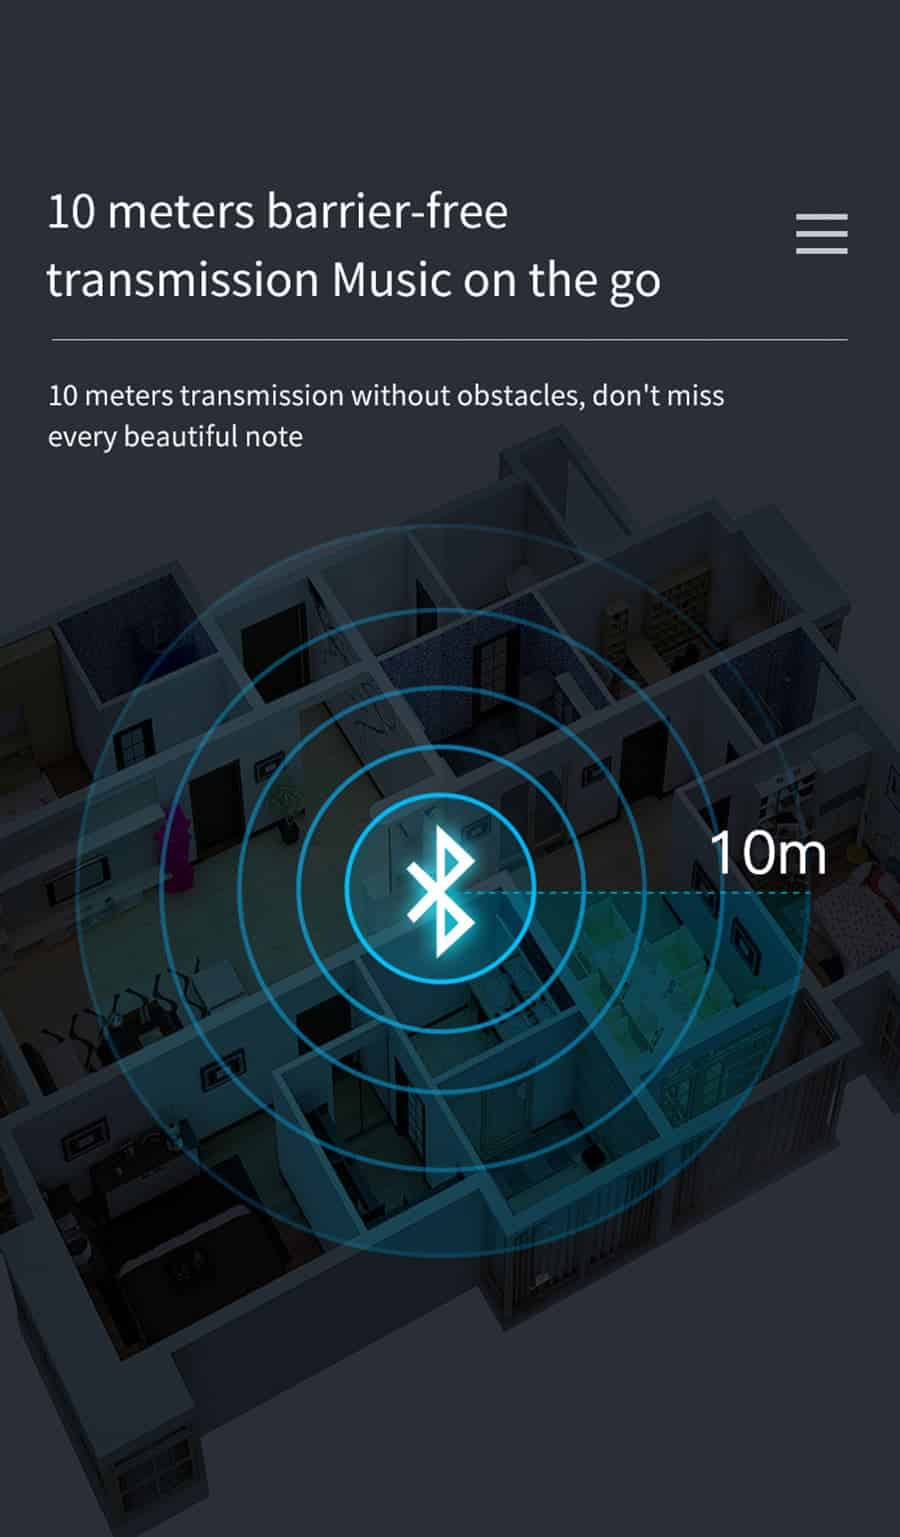 Bluetooth 5.0 Audio Receiver Transmitter with LCD Display 2IN1_10 meter barrier-free transmission music on the go